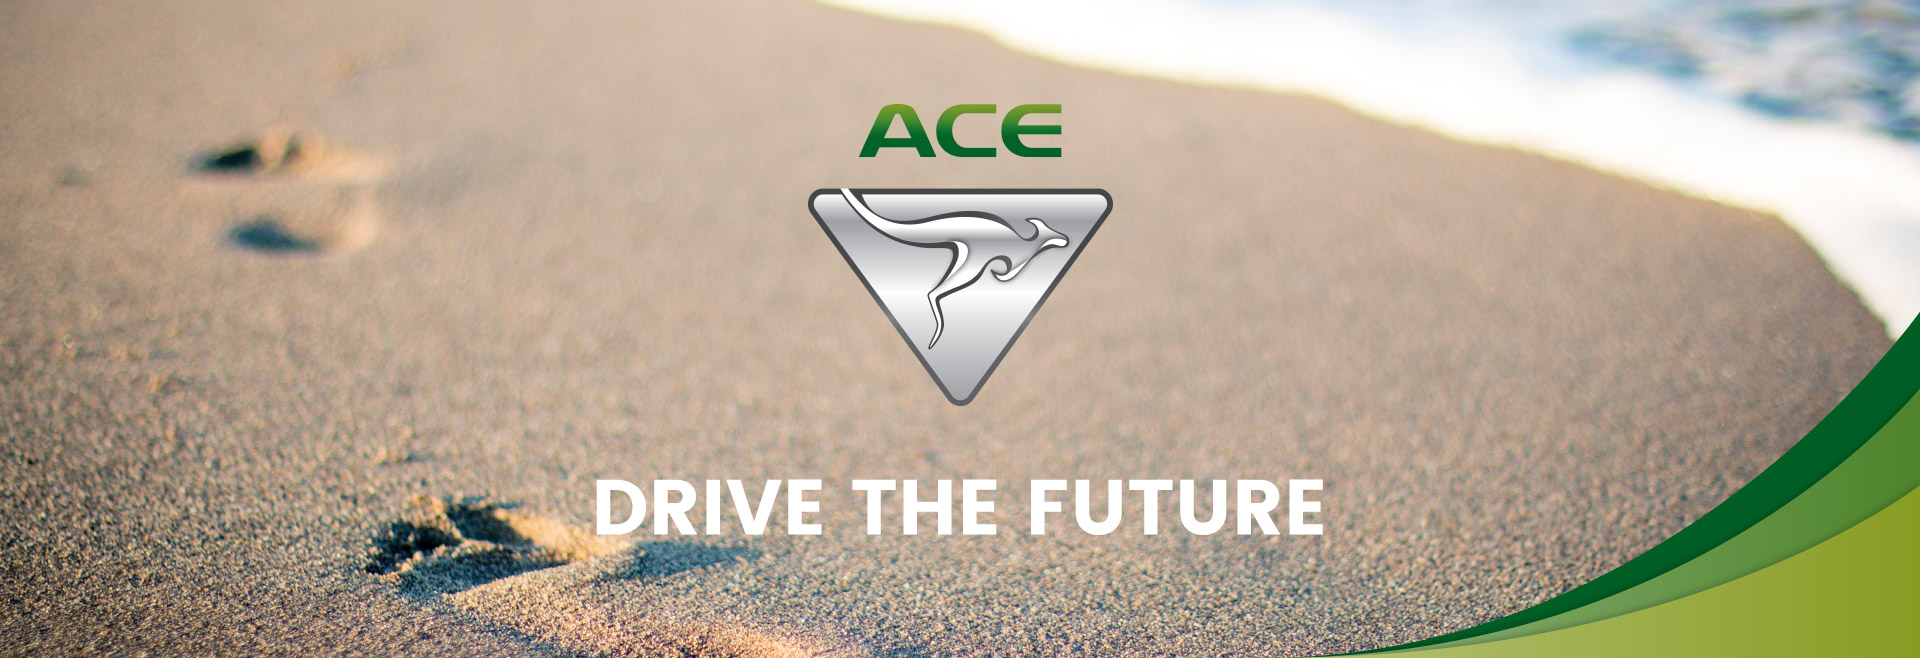 ACE Electric Vehicles - Drive The Future